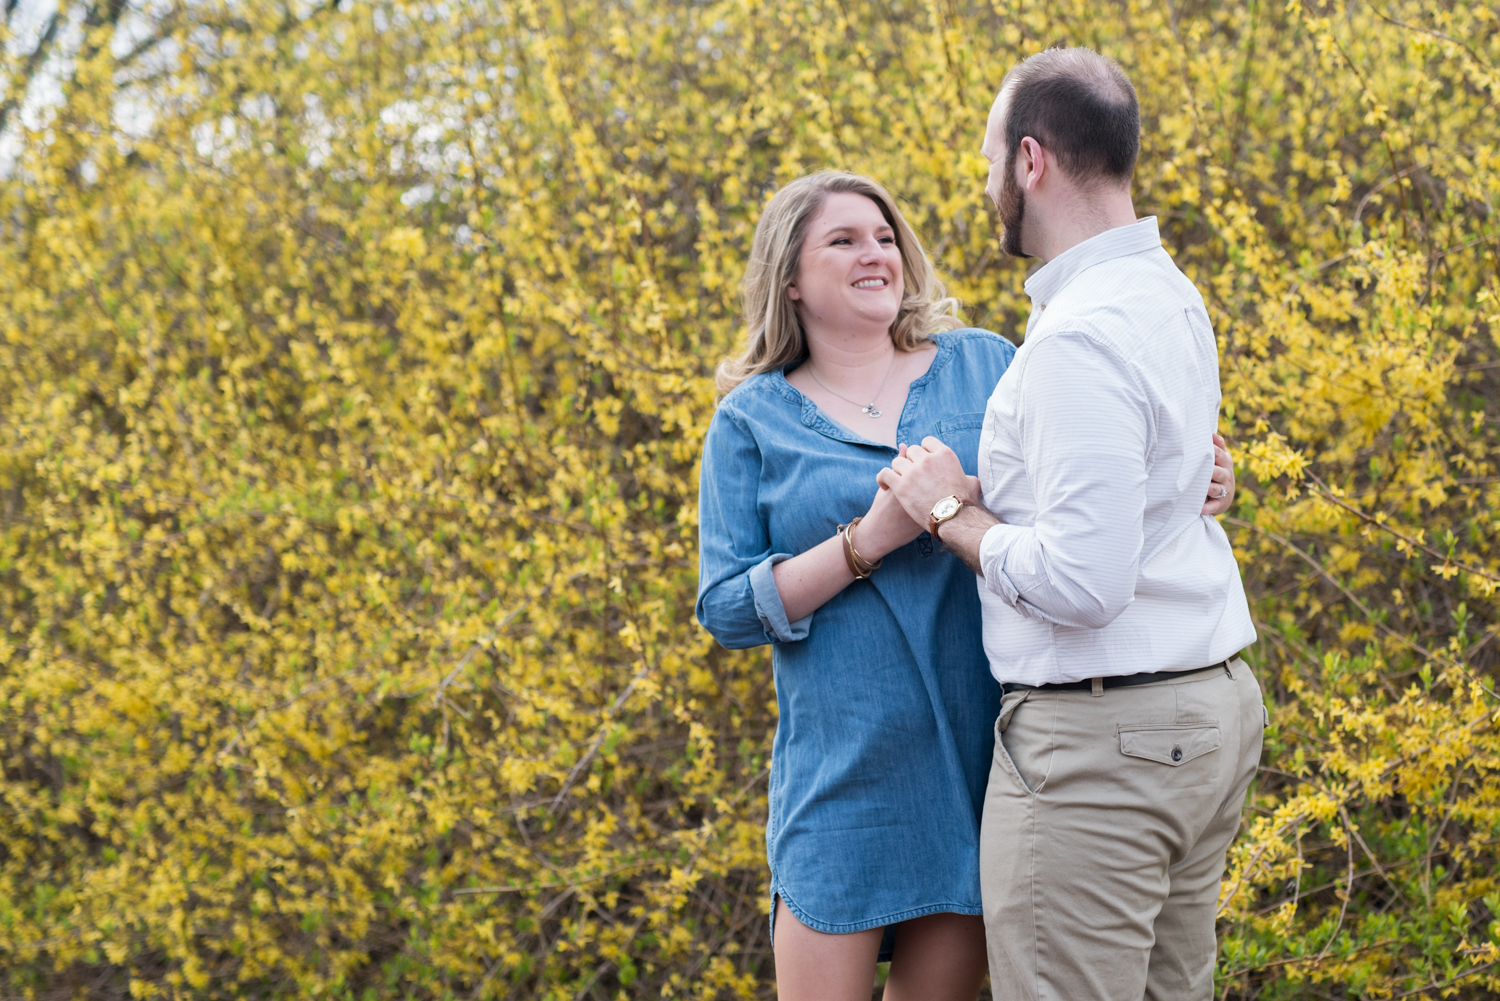 Matt+Melissa- Meadowlands Environmental Center Engagement Session- New Jersey- Olivia Christina Photo-18.JPG